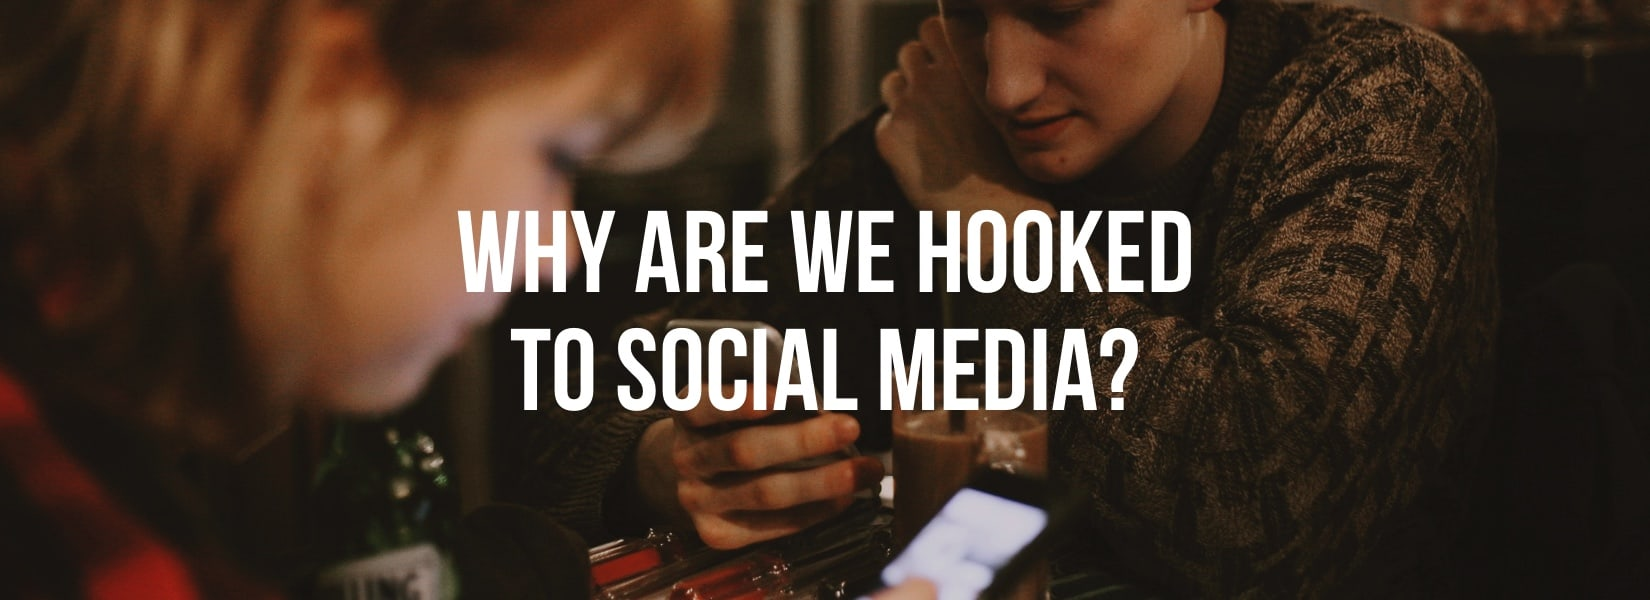 Why are we hooked to social media?